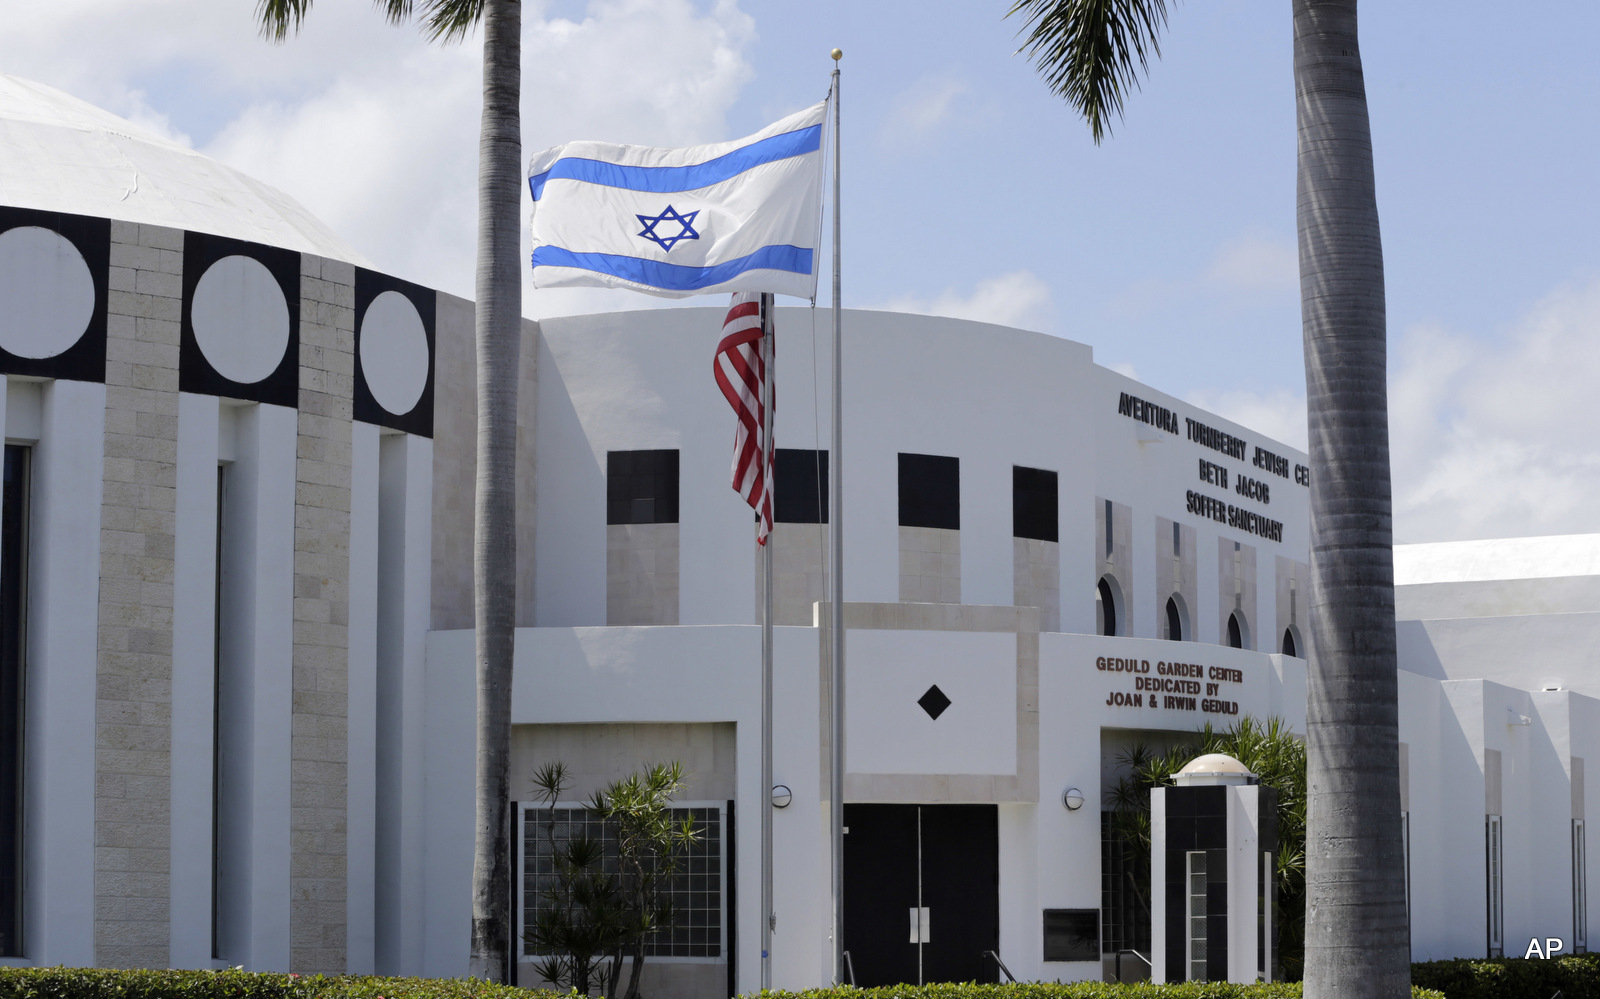 The Aventura Turnberry Jewish Center is viewed Monday, May 2, 2016, in Miami. Authorities said Monday, May 2, 2016, that a planned explosive attack on the center was thwarted by the FBI through an undercover operation involving a dummy bomb. (AP Photo/Lynne Sladky)